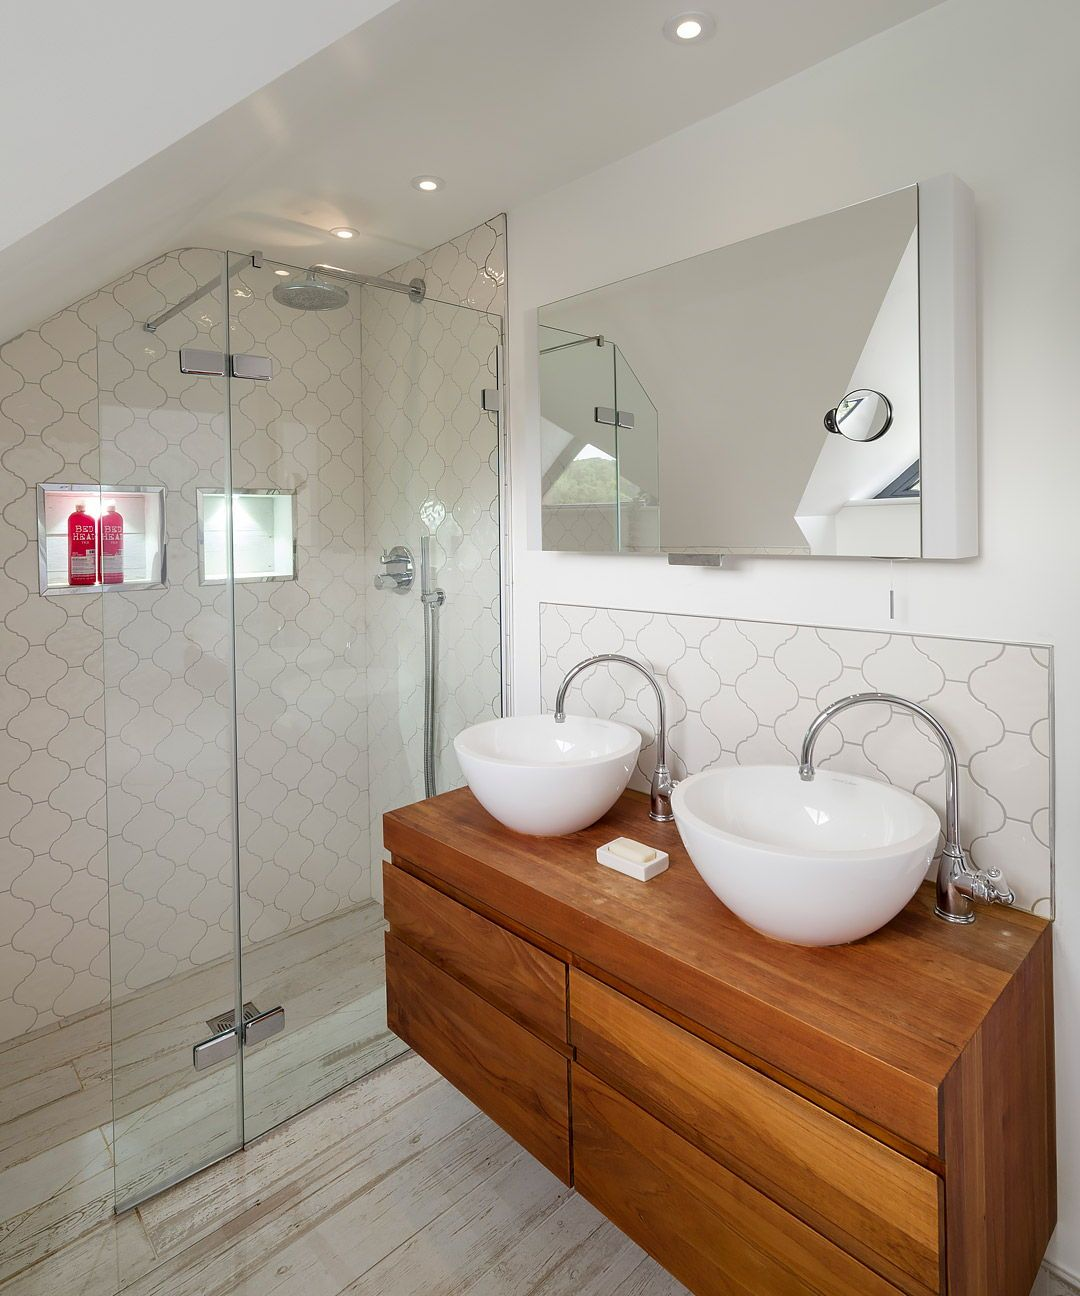 His And Her Sinks In Bathroom Building Your Own Home And The Cost